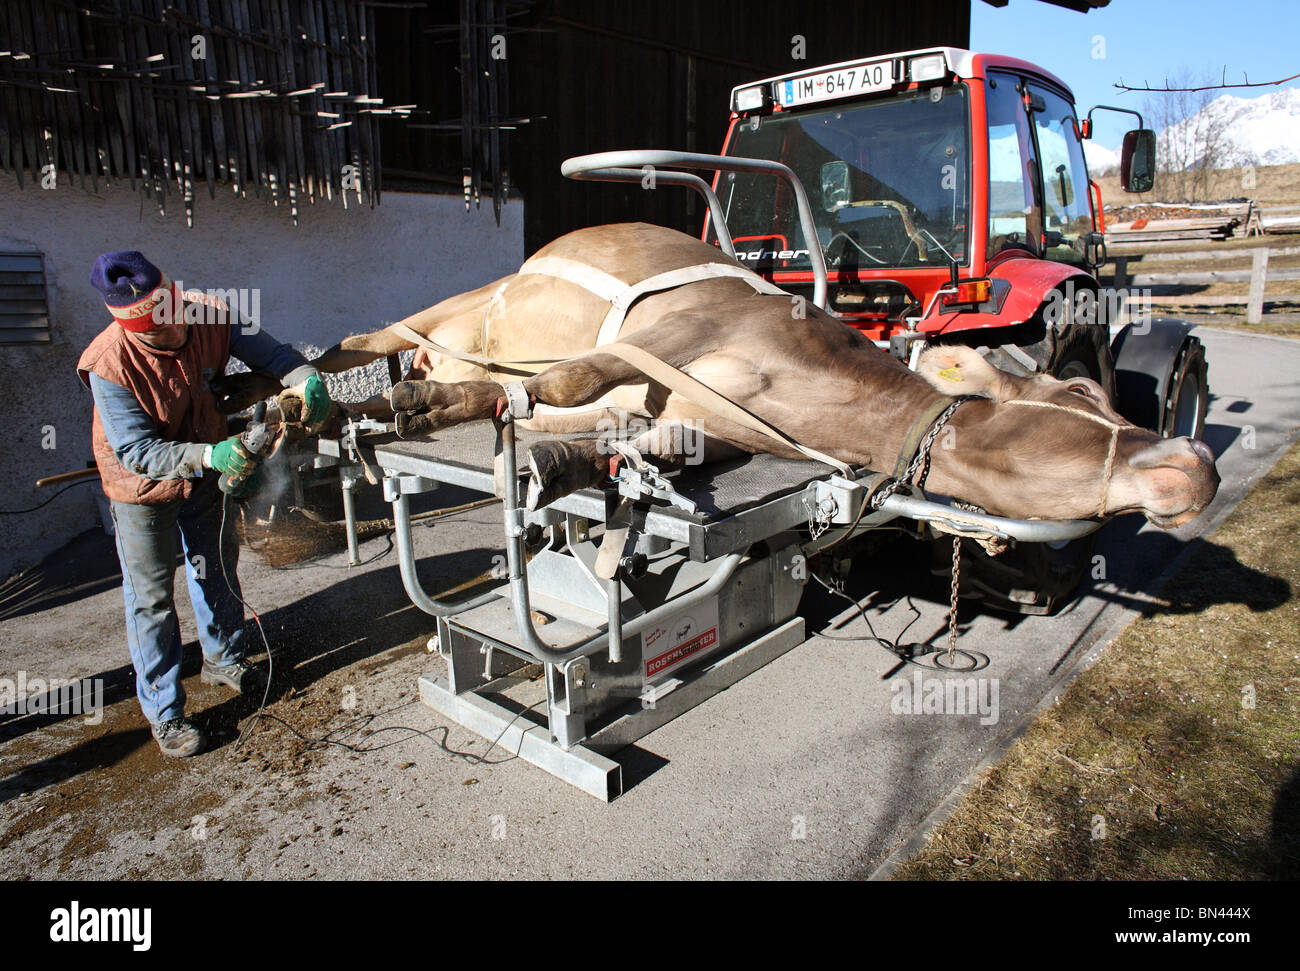 Vet cuts a cow's hooves, Jerzens, Austria - Stock Image